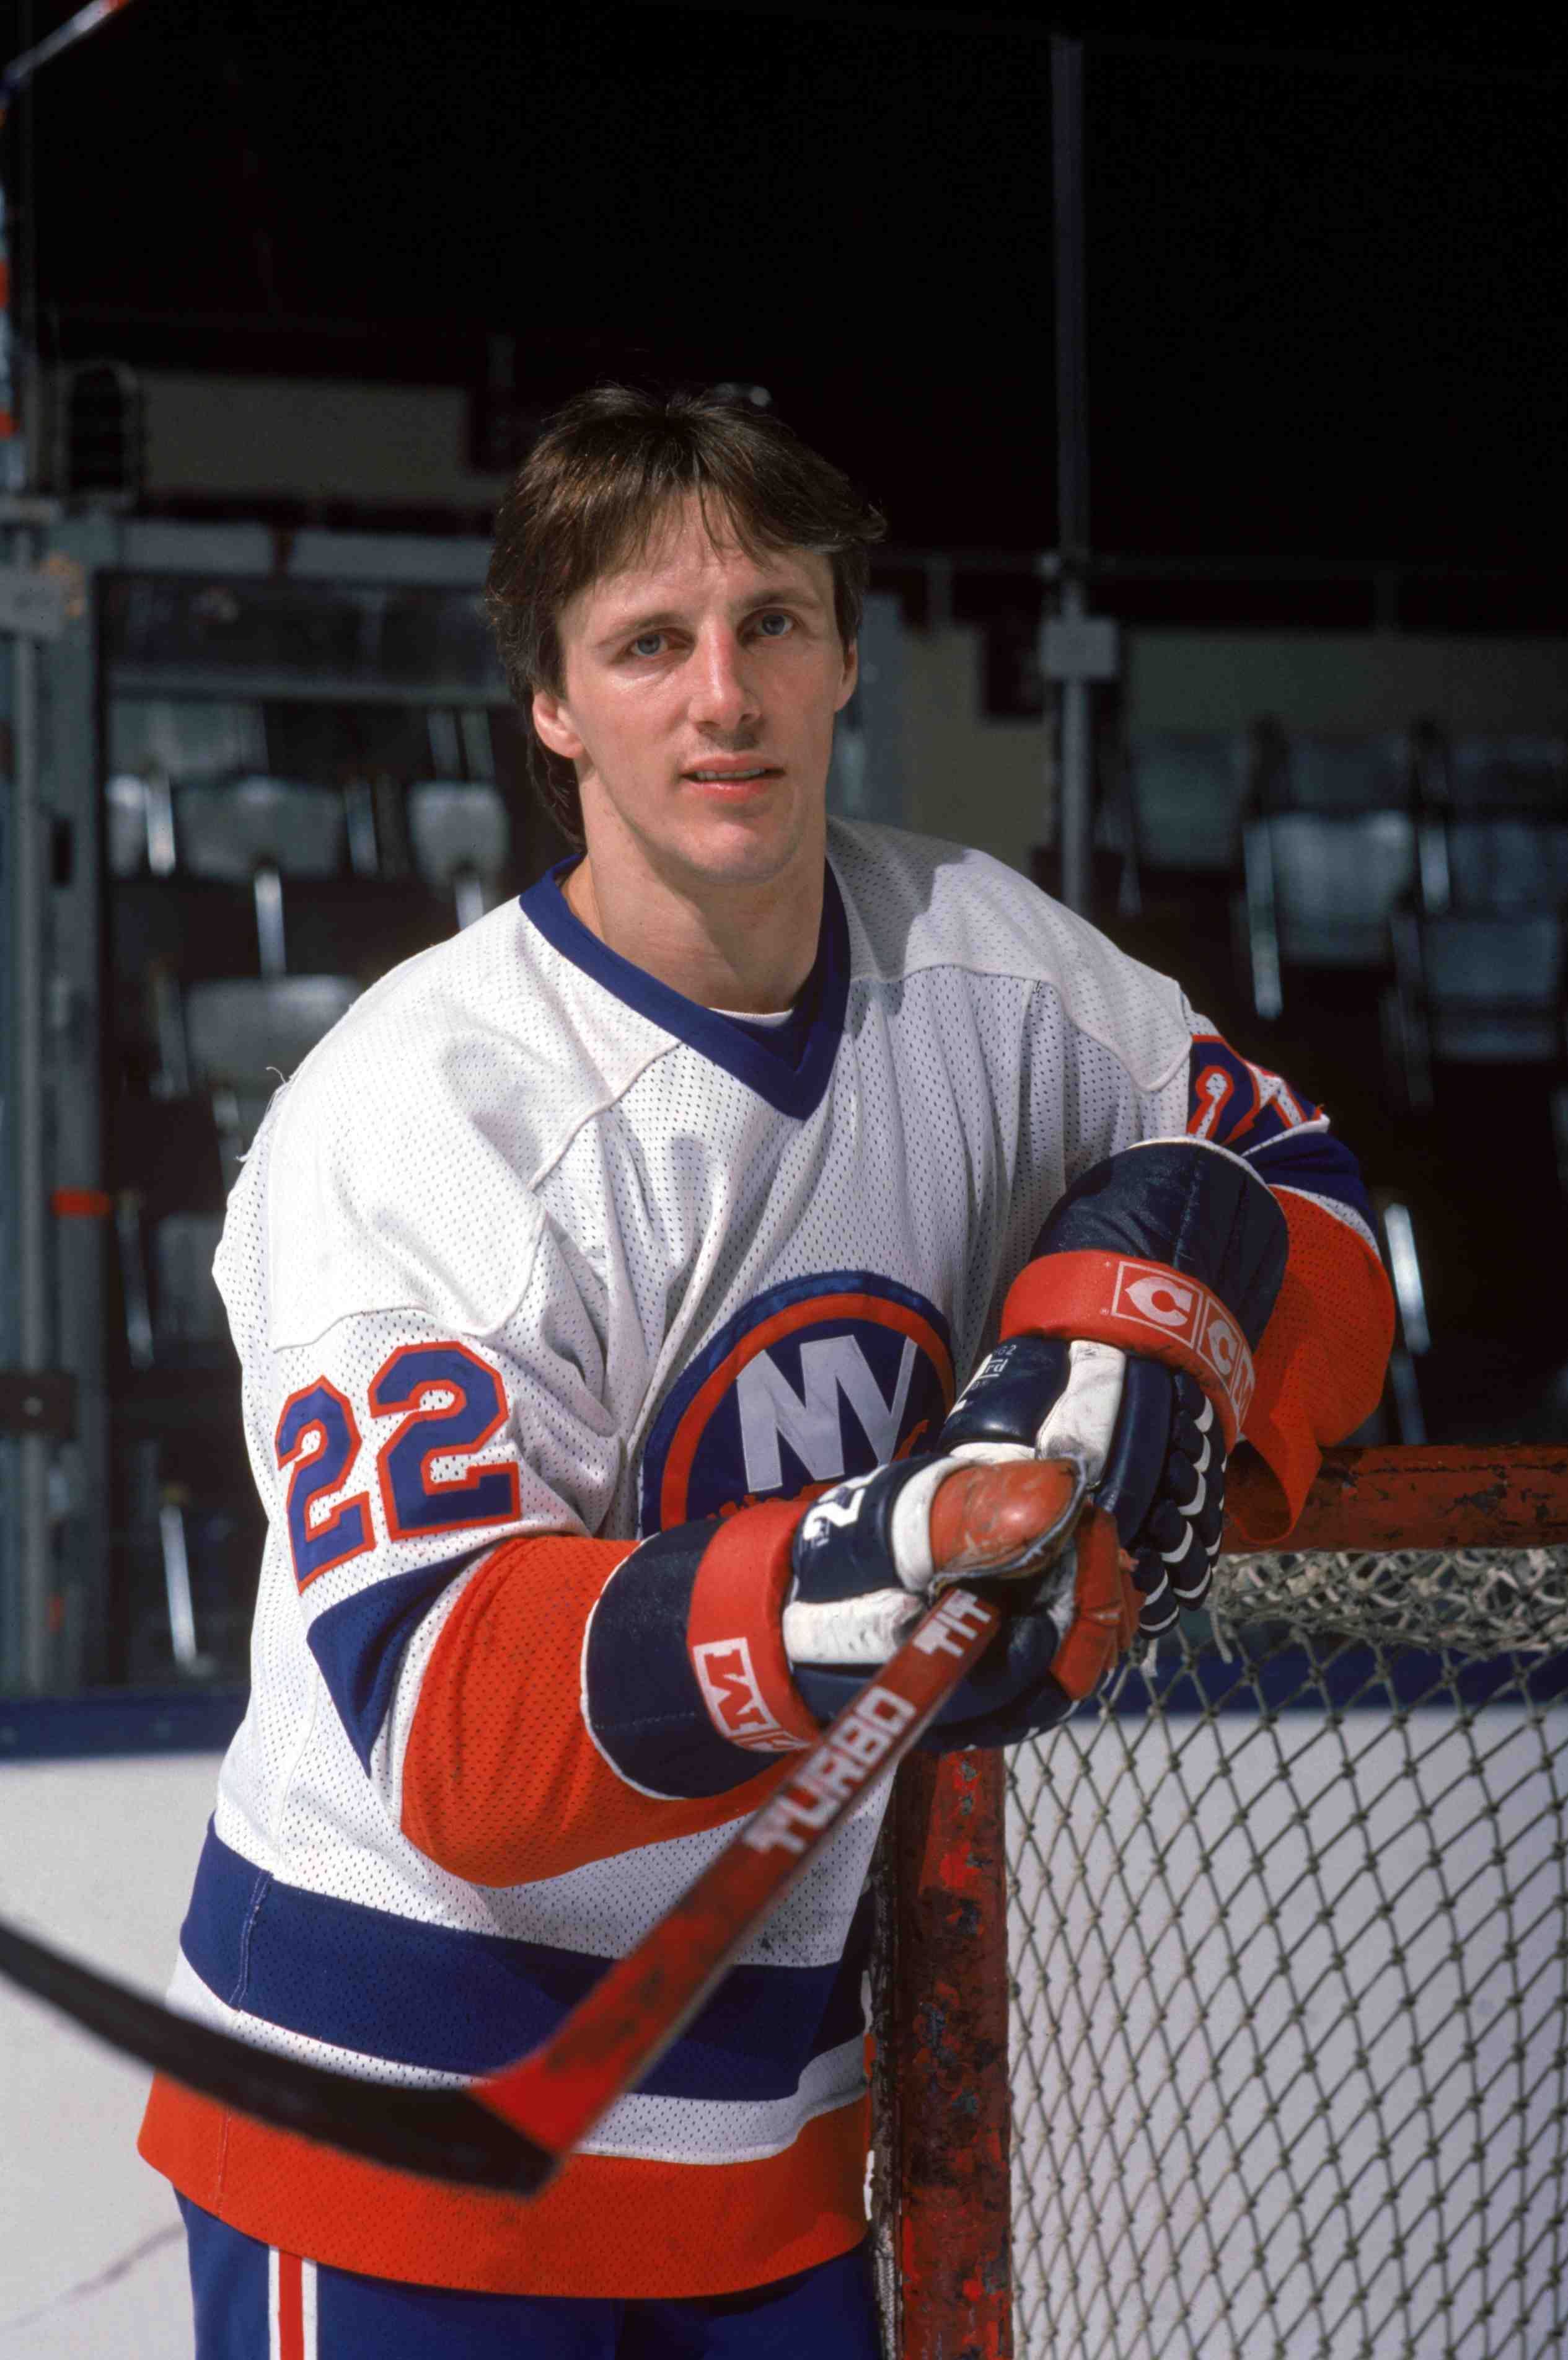 Oral Hygiene Habits Of The Interesting Nhl Hall Of Famer New York Islander Mike Bossy Mike Bossy Hockey Players Hockey